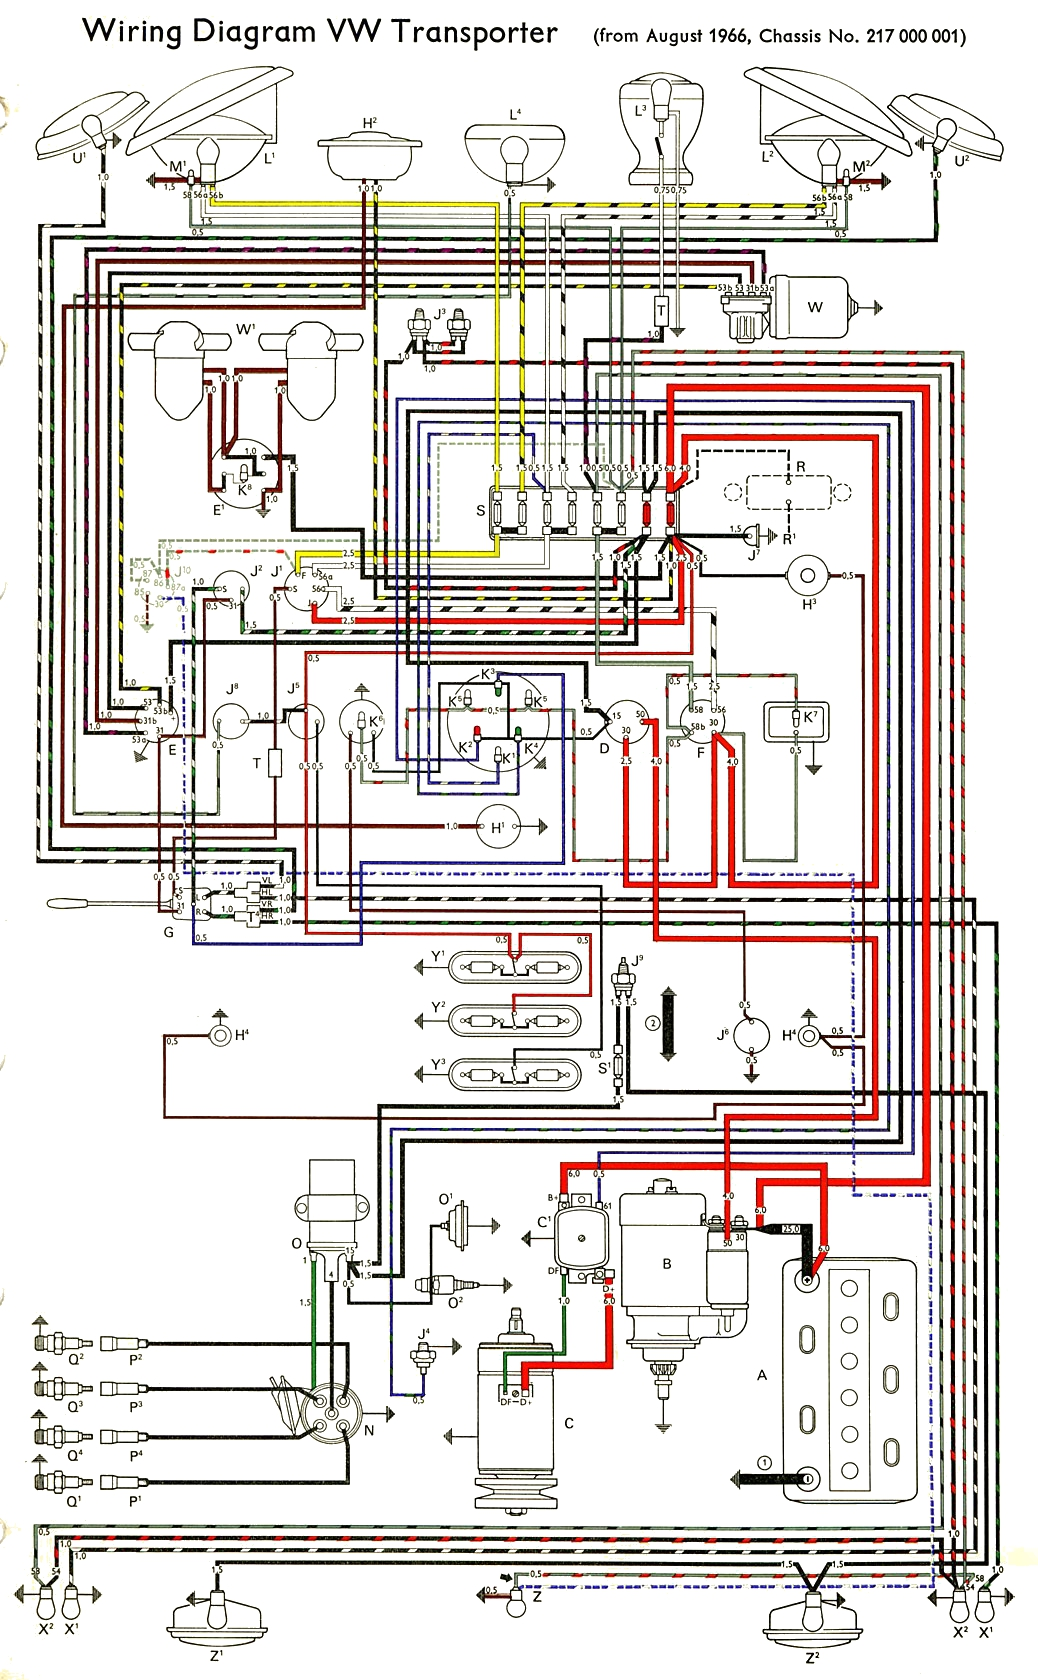 impala wiring diagram image wiring diagram 1963 chevy impala wiring diagram 1963 wiring diagrams car on 1963 impala wiring diagram